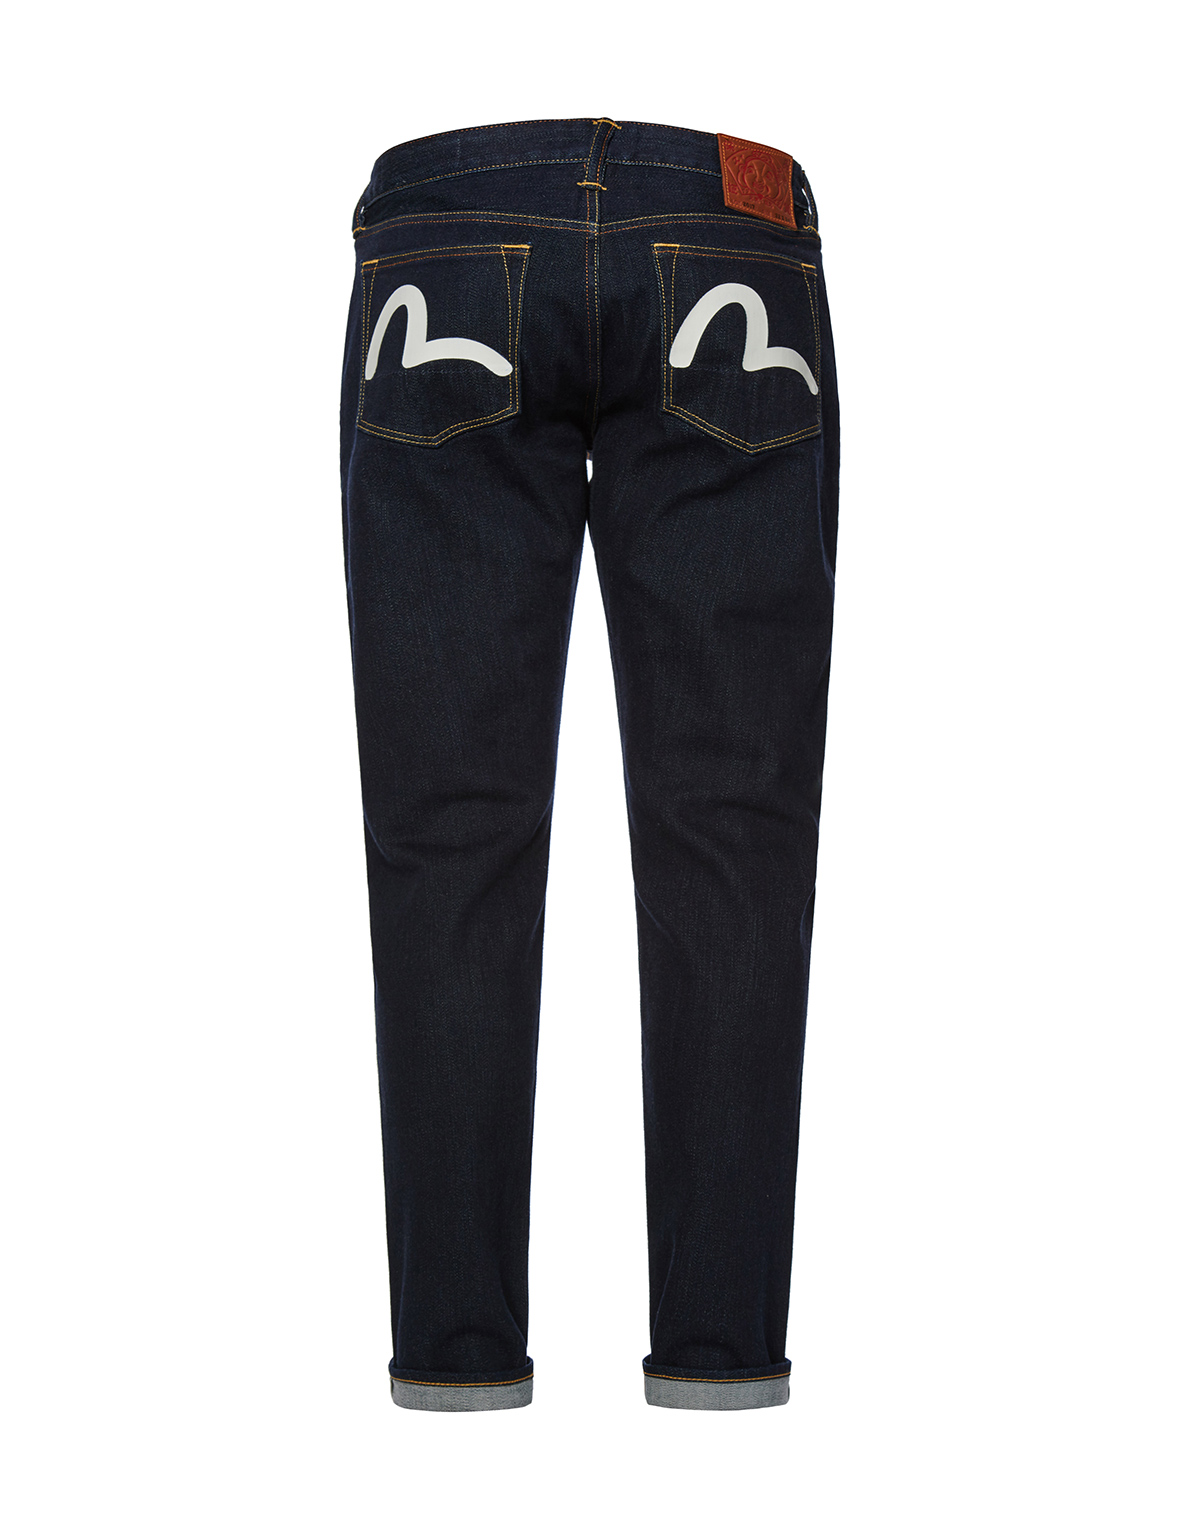 Seagull Carrot Fit Jeans 2017